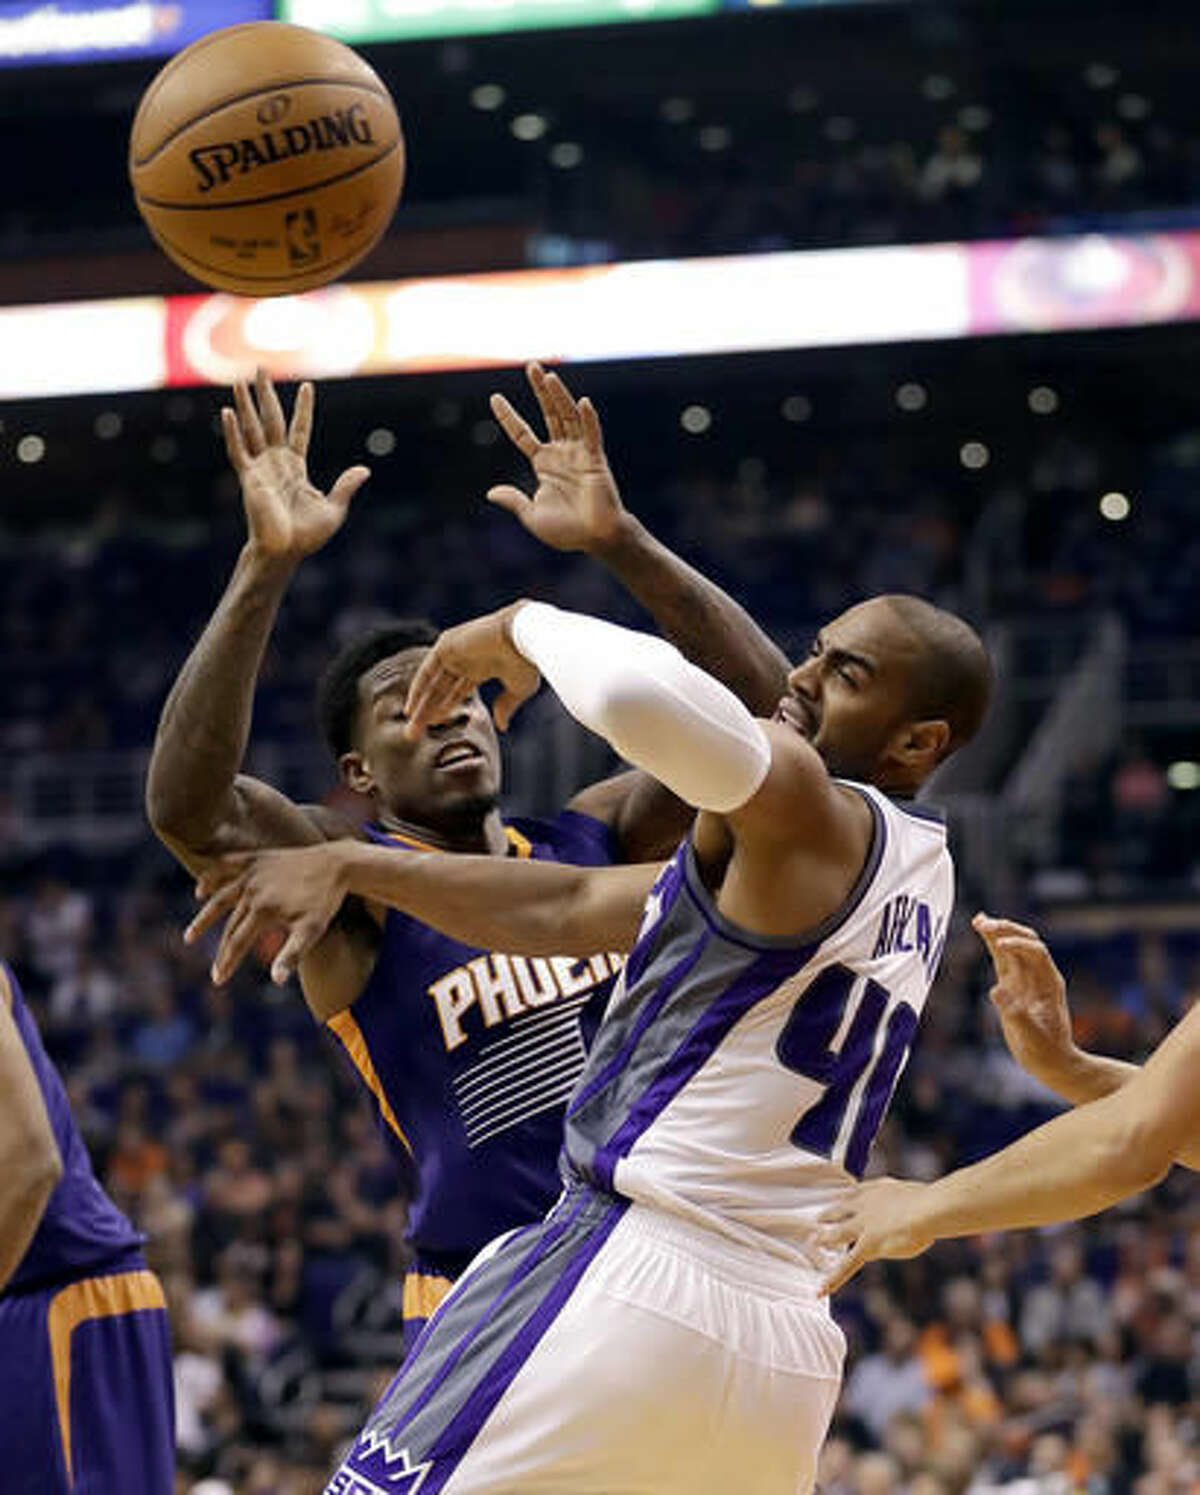 Sacramento Kings guard Arron Afflalo (40) loses the ball under pressure from Phoenix Suns guard Eric Bledsoe, left, during the first half of an NBA basketball game, Wednesday, Oct. 26, 2016, in Phoenix. (AP Photo/Matt York)